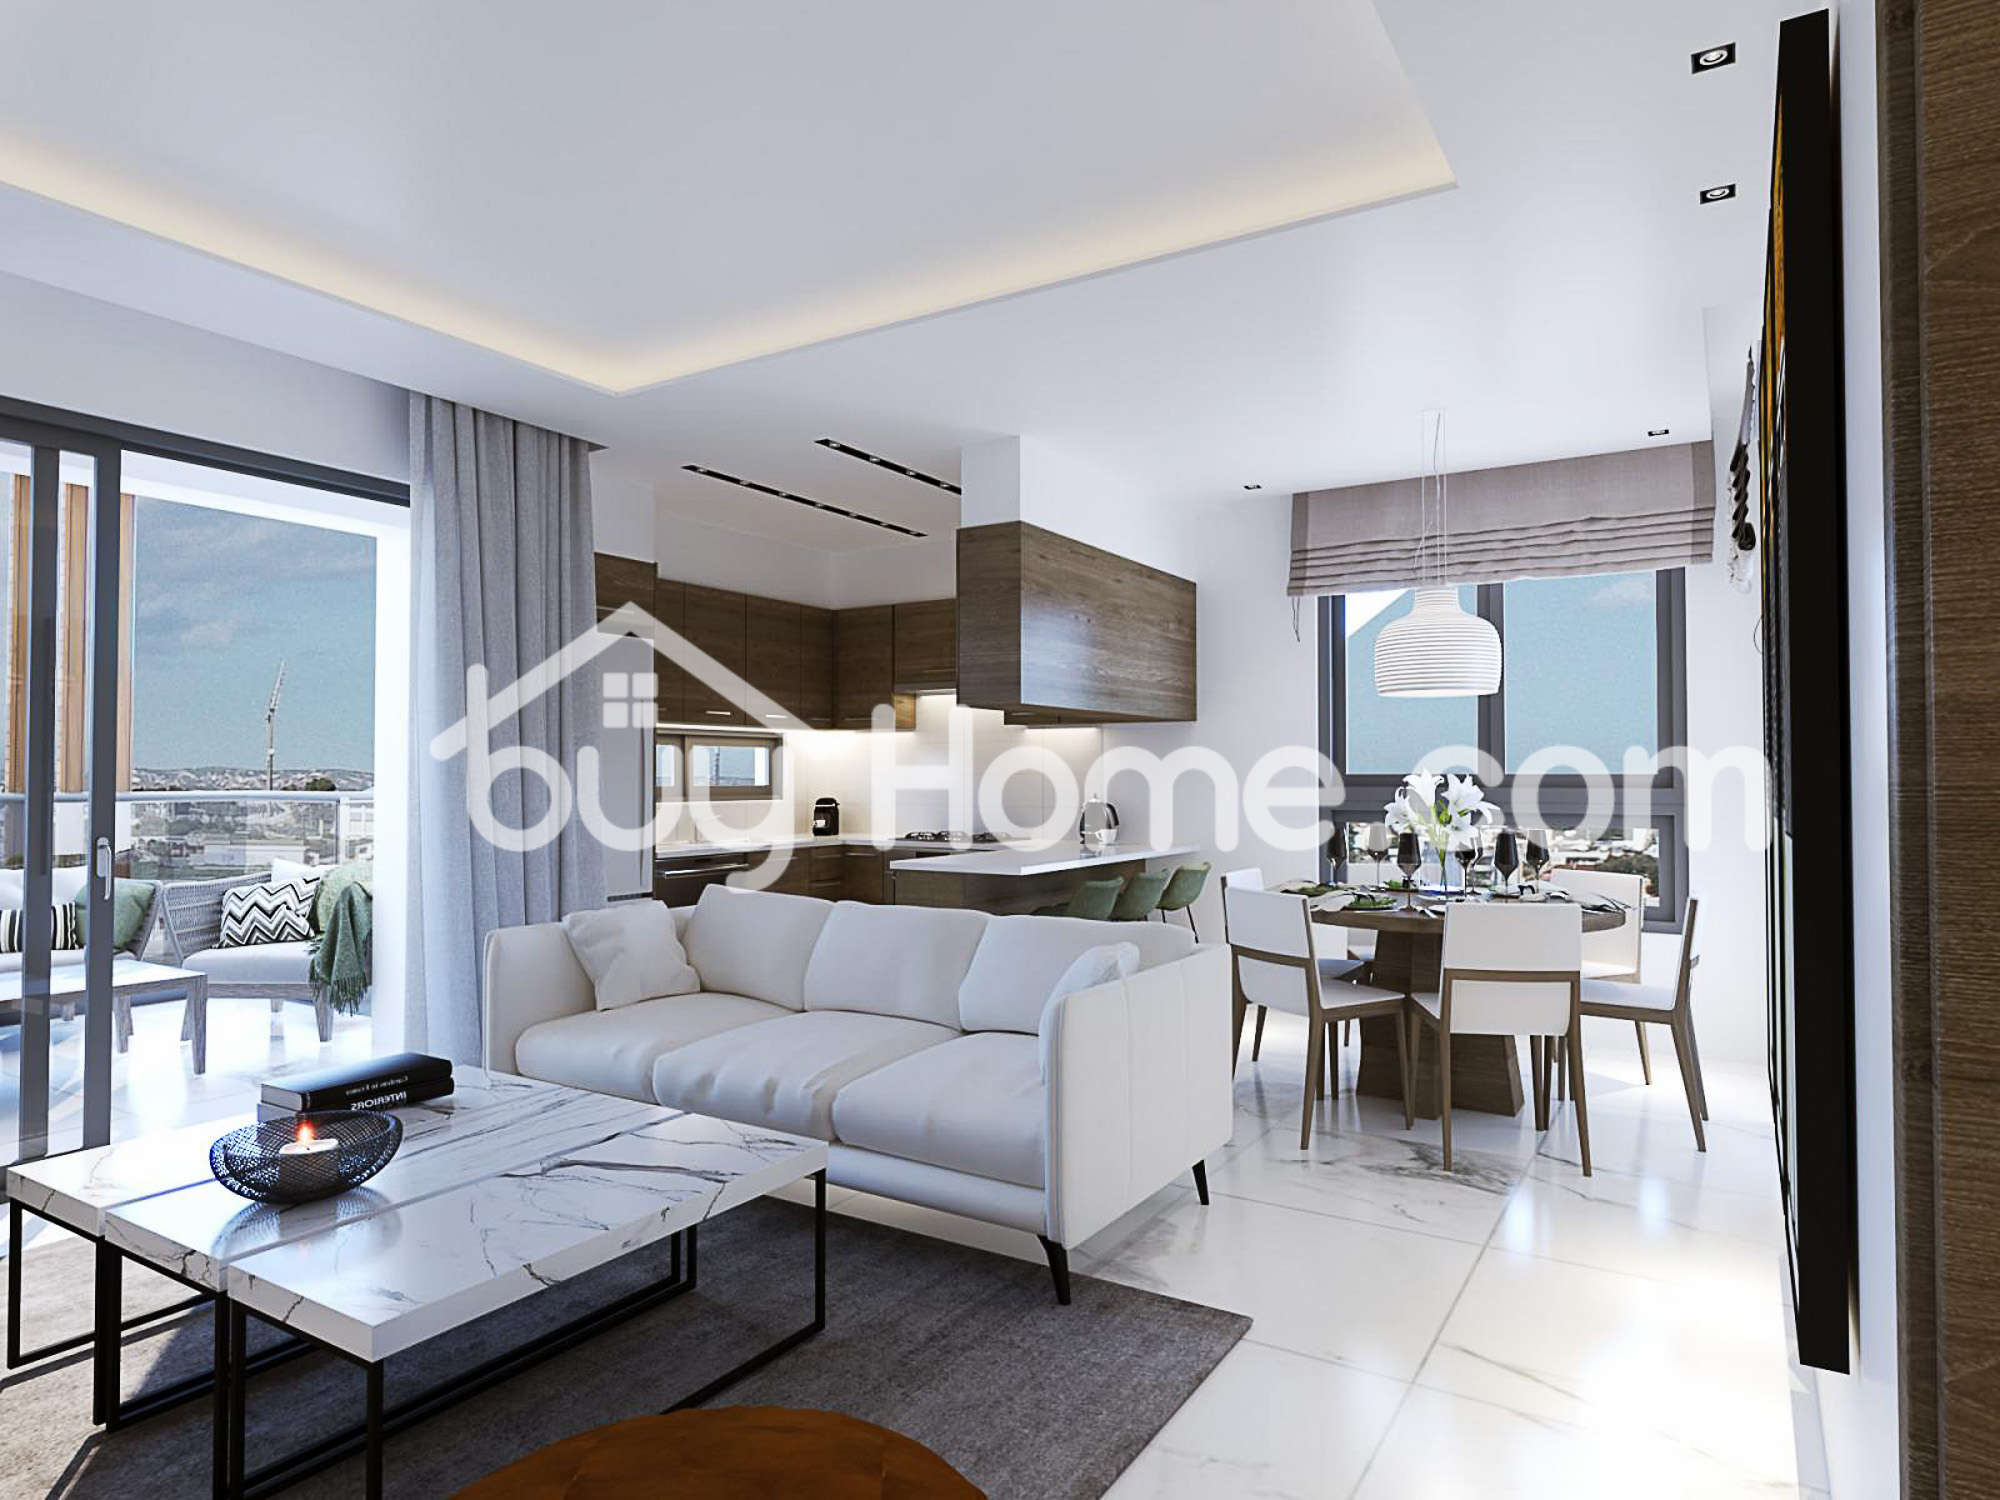 2 Bedroom  New Modern Apartments   BuyHome